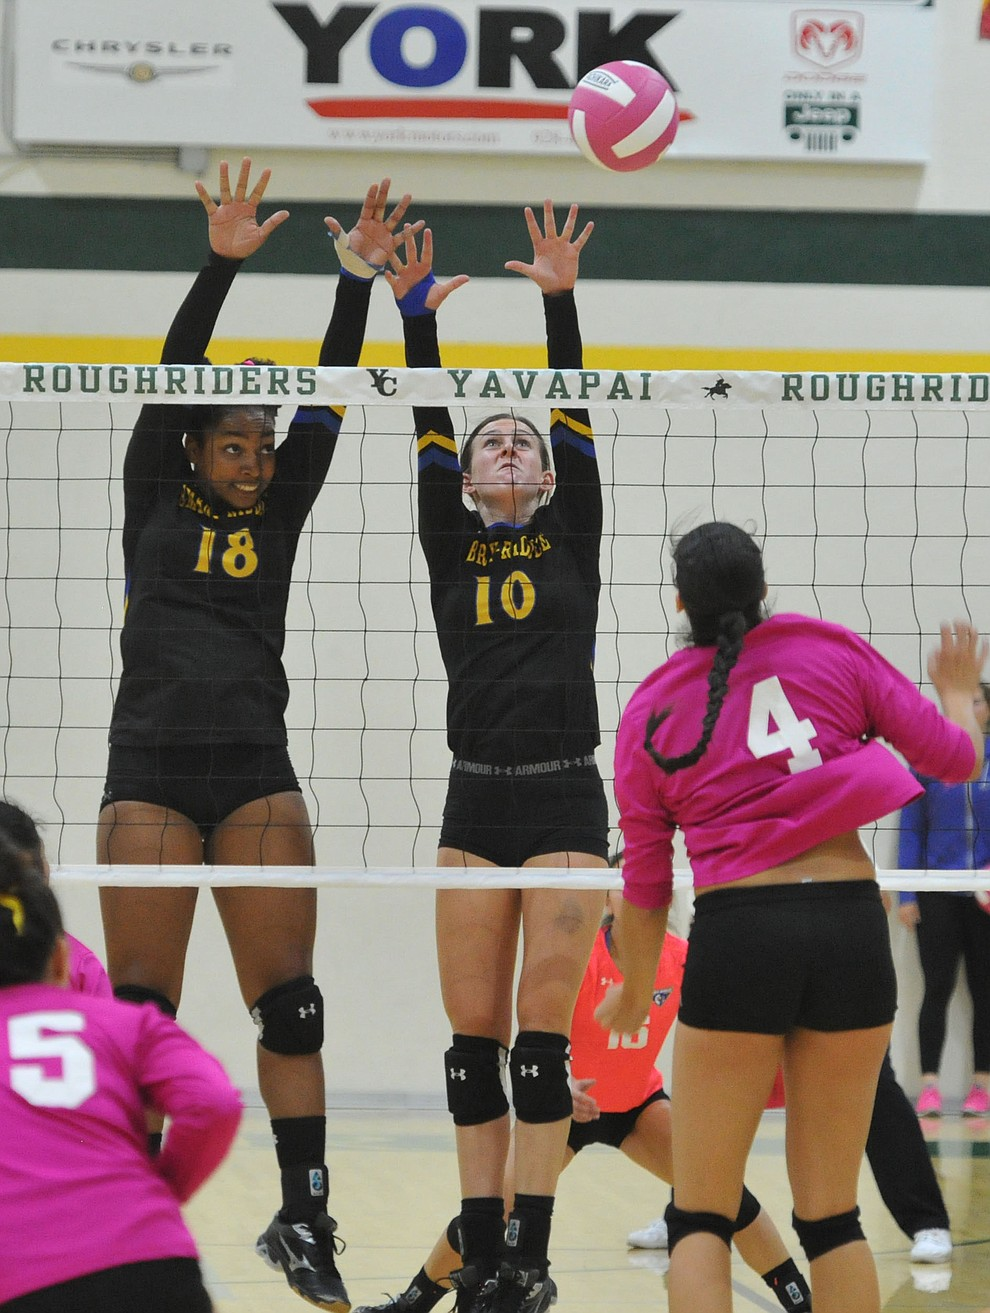 ERAU's Sharik Joseph (18) and Jalin Yoder (10) go for a block on Yavapai's Kaytlin Yost (4) in the Battle Against Breast Cancer volleyball game Wednesday night at Yavapai College in Prescott. (Les Stukenberg/Courier)